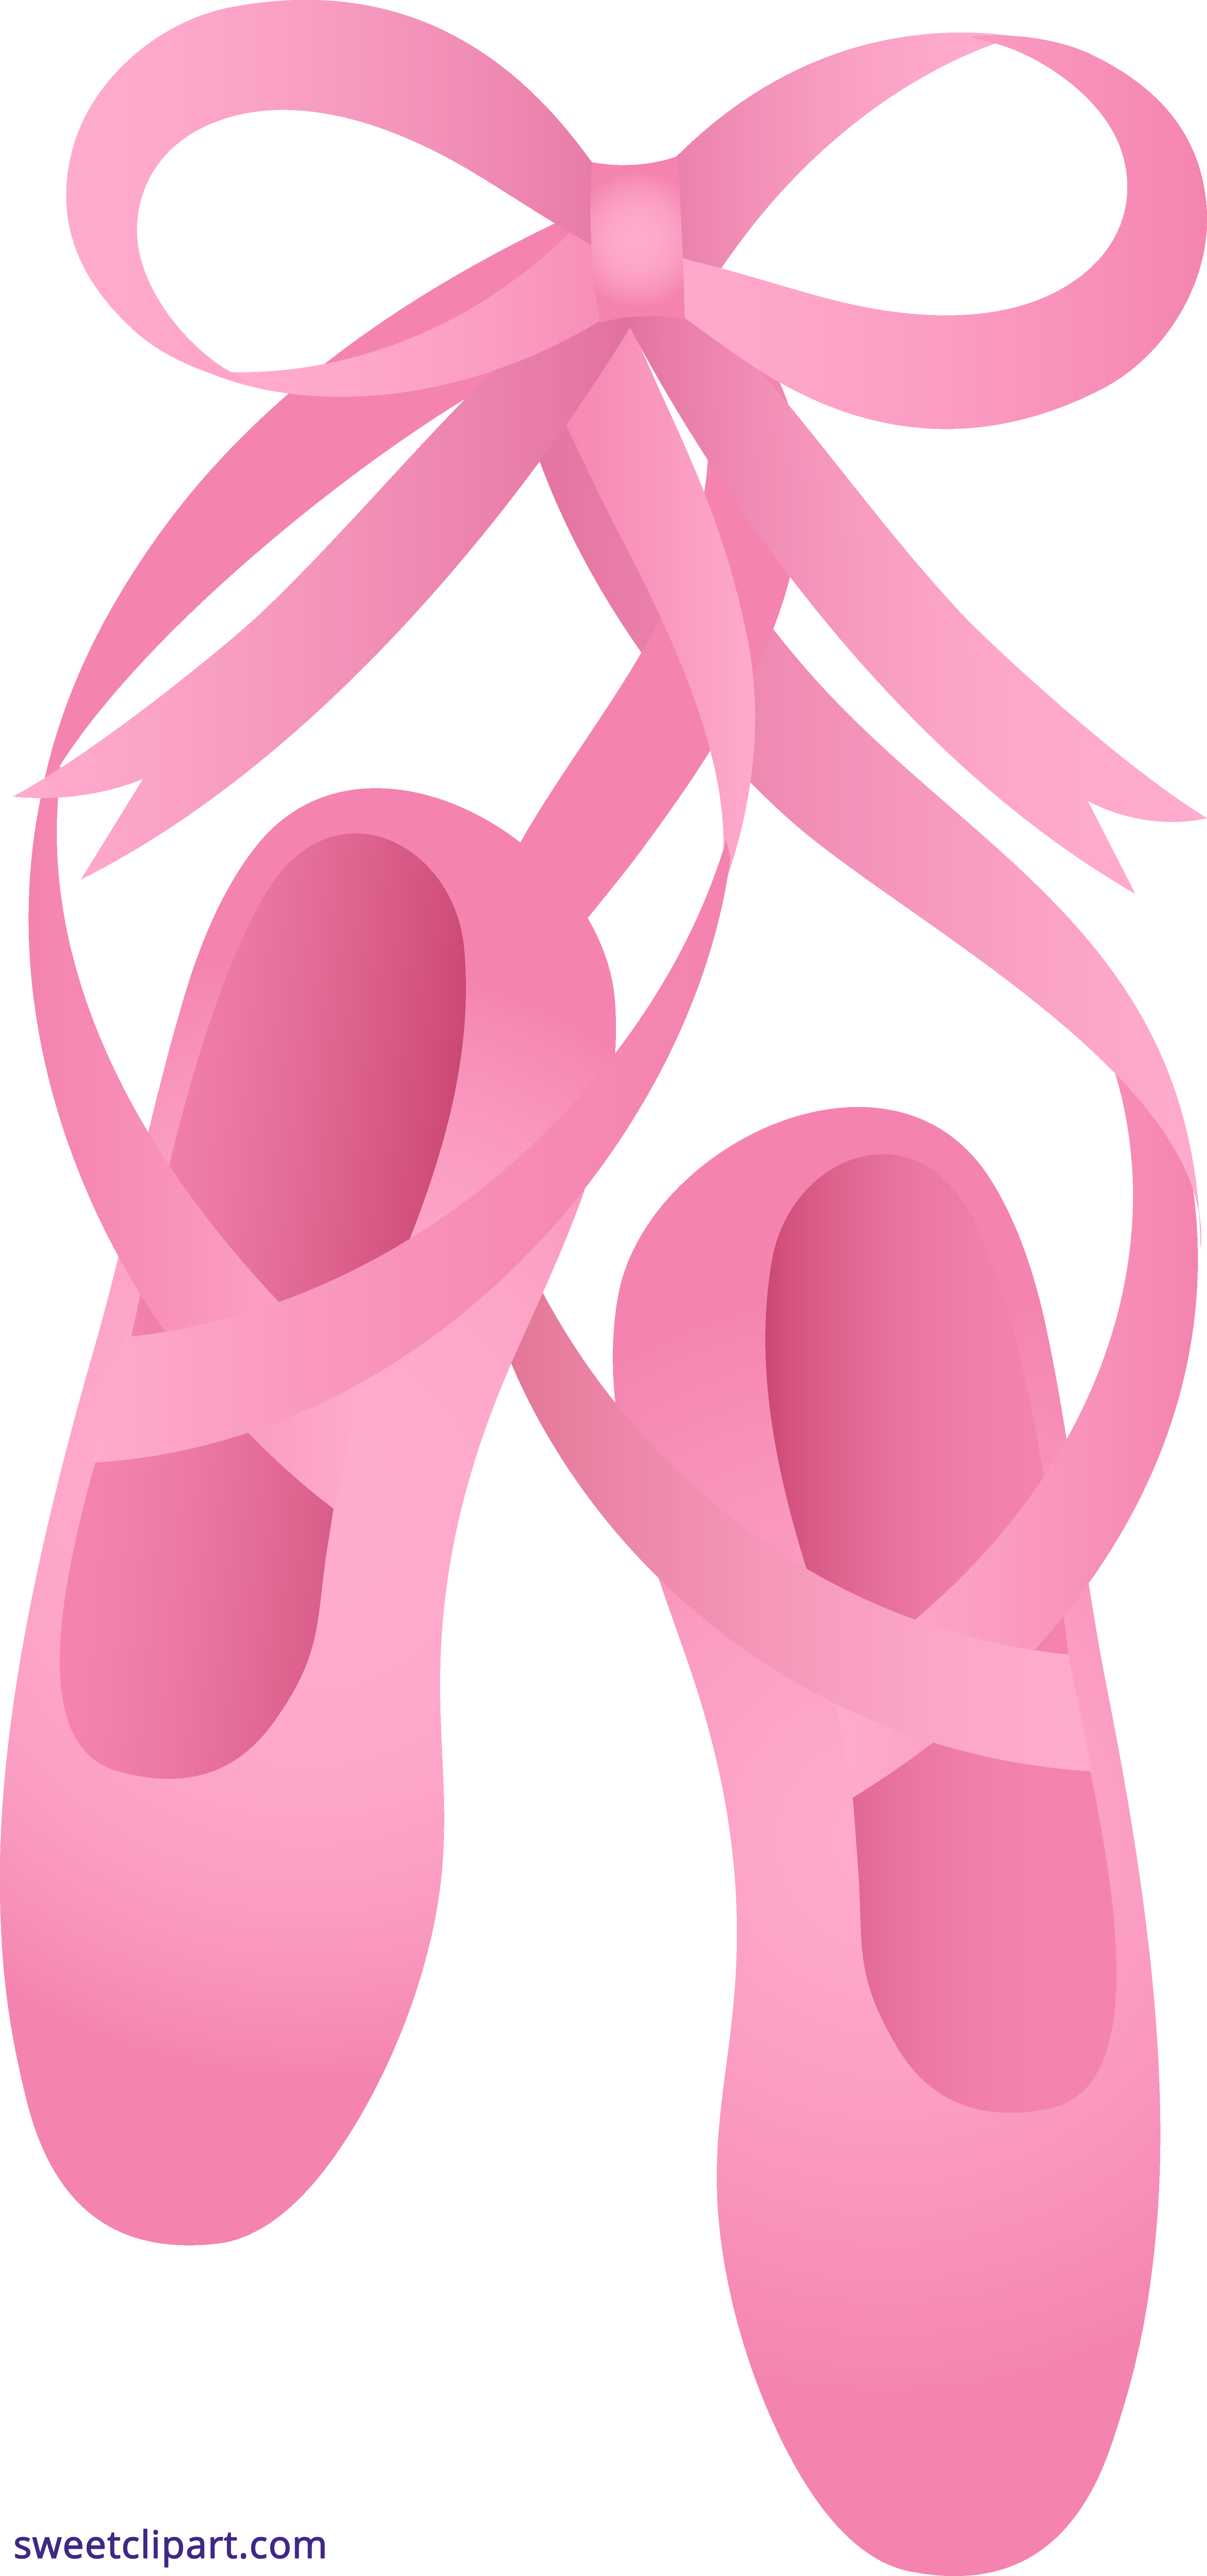 pink ballet slippers clipart sweet clip art shoe clip art images show clip art image of black old people